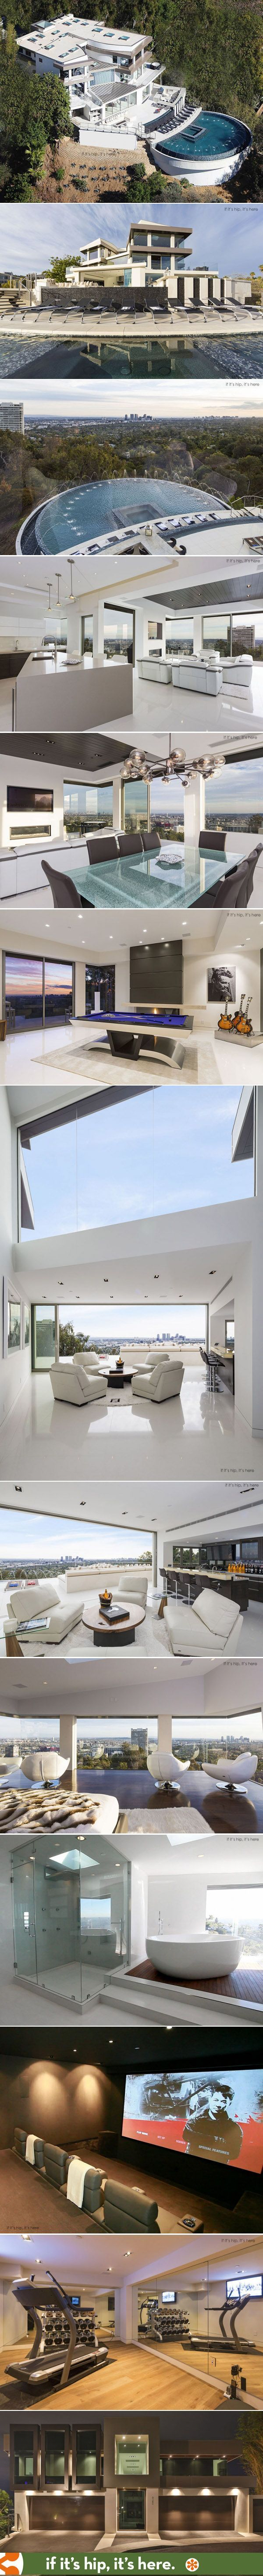 $25 million home for sale in Beverly Hills, CA | http://www.ifitshipitshere.com/omfg-house-for-sale/